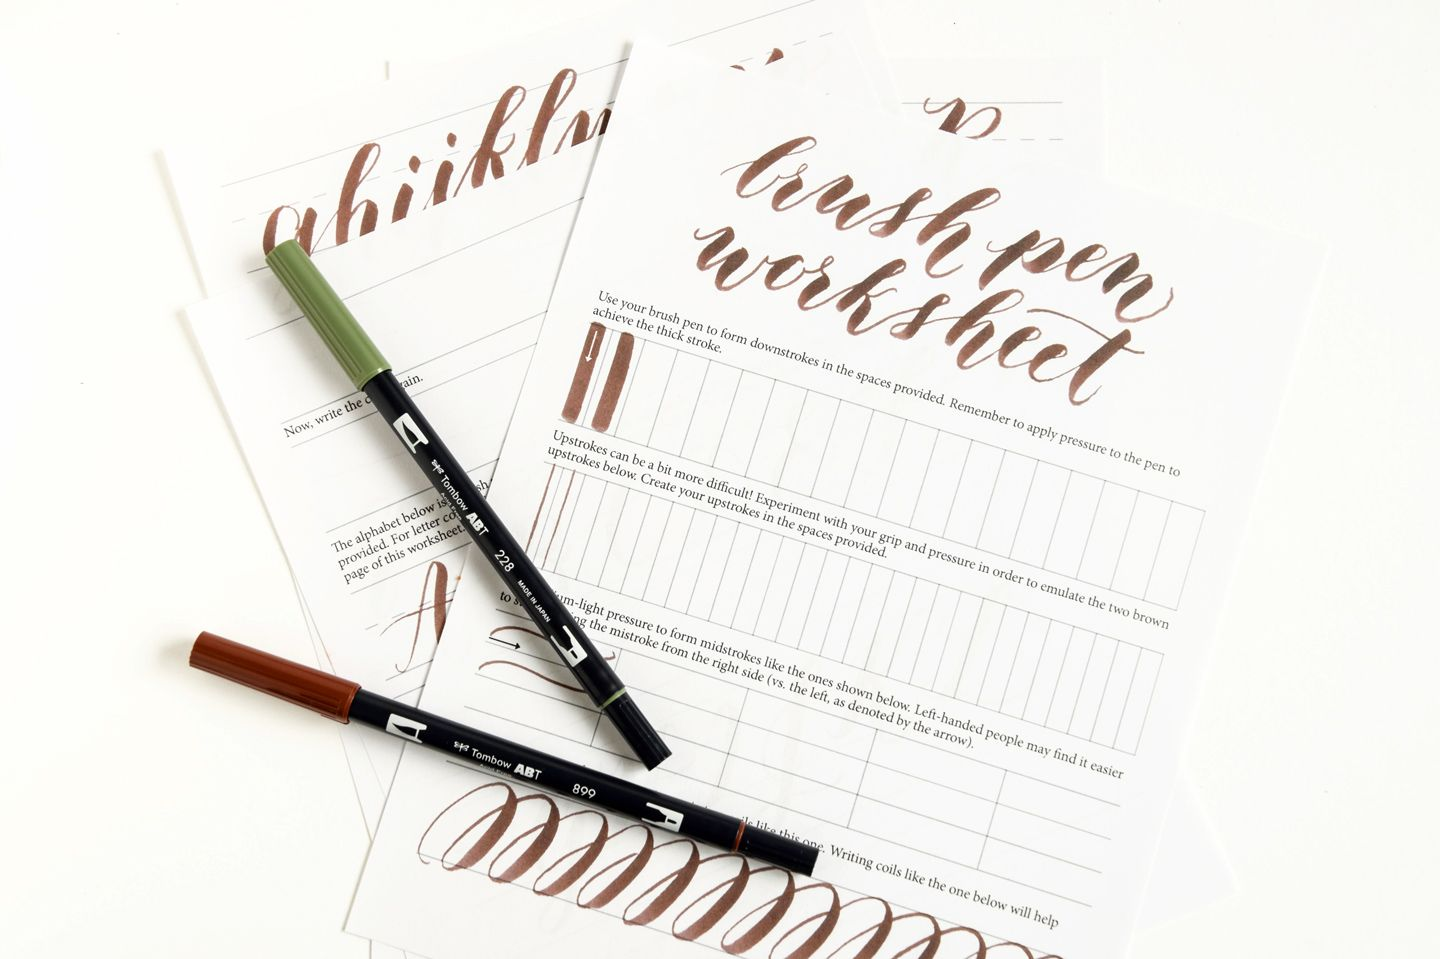 Free Brush Pen Calligraphy Worksheet With Images